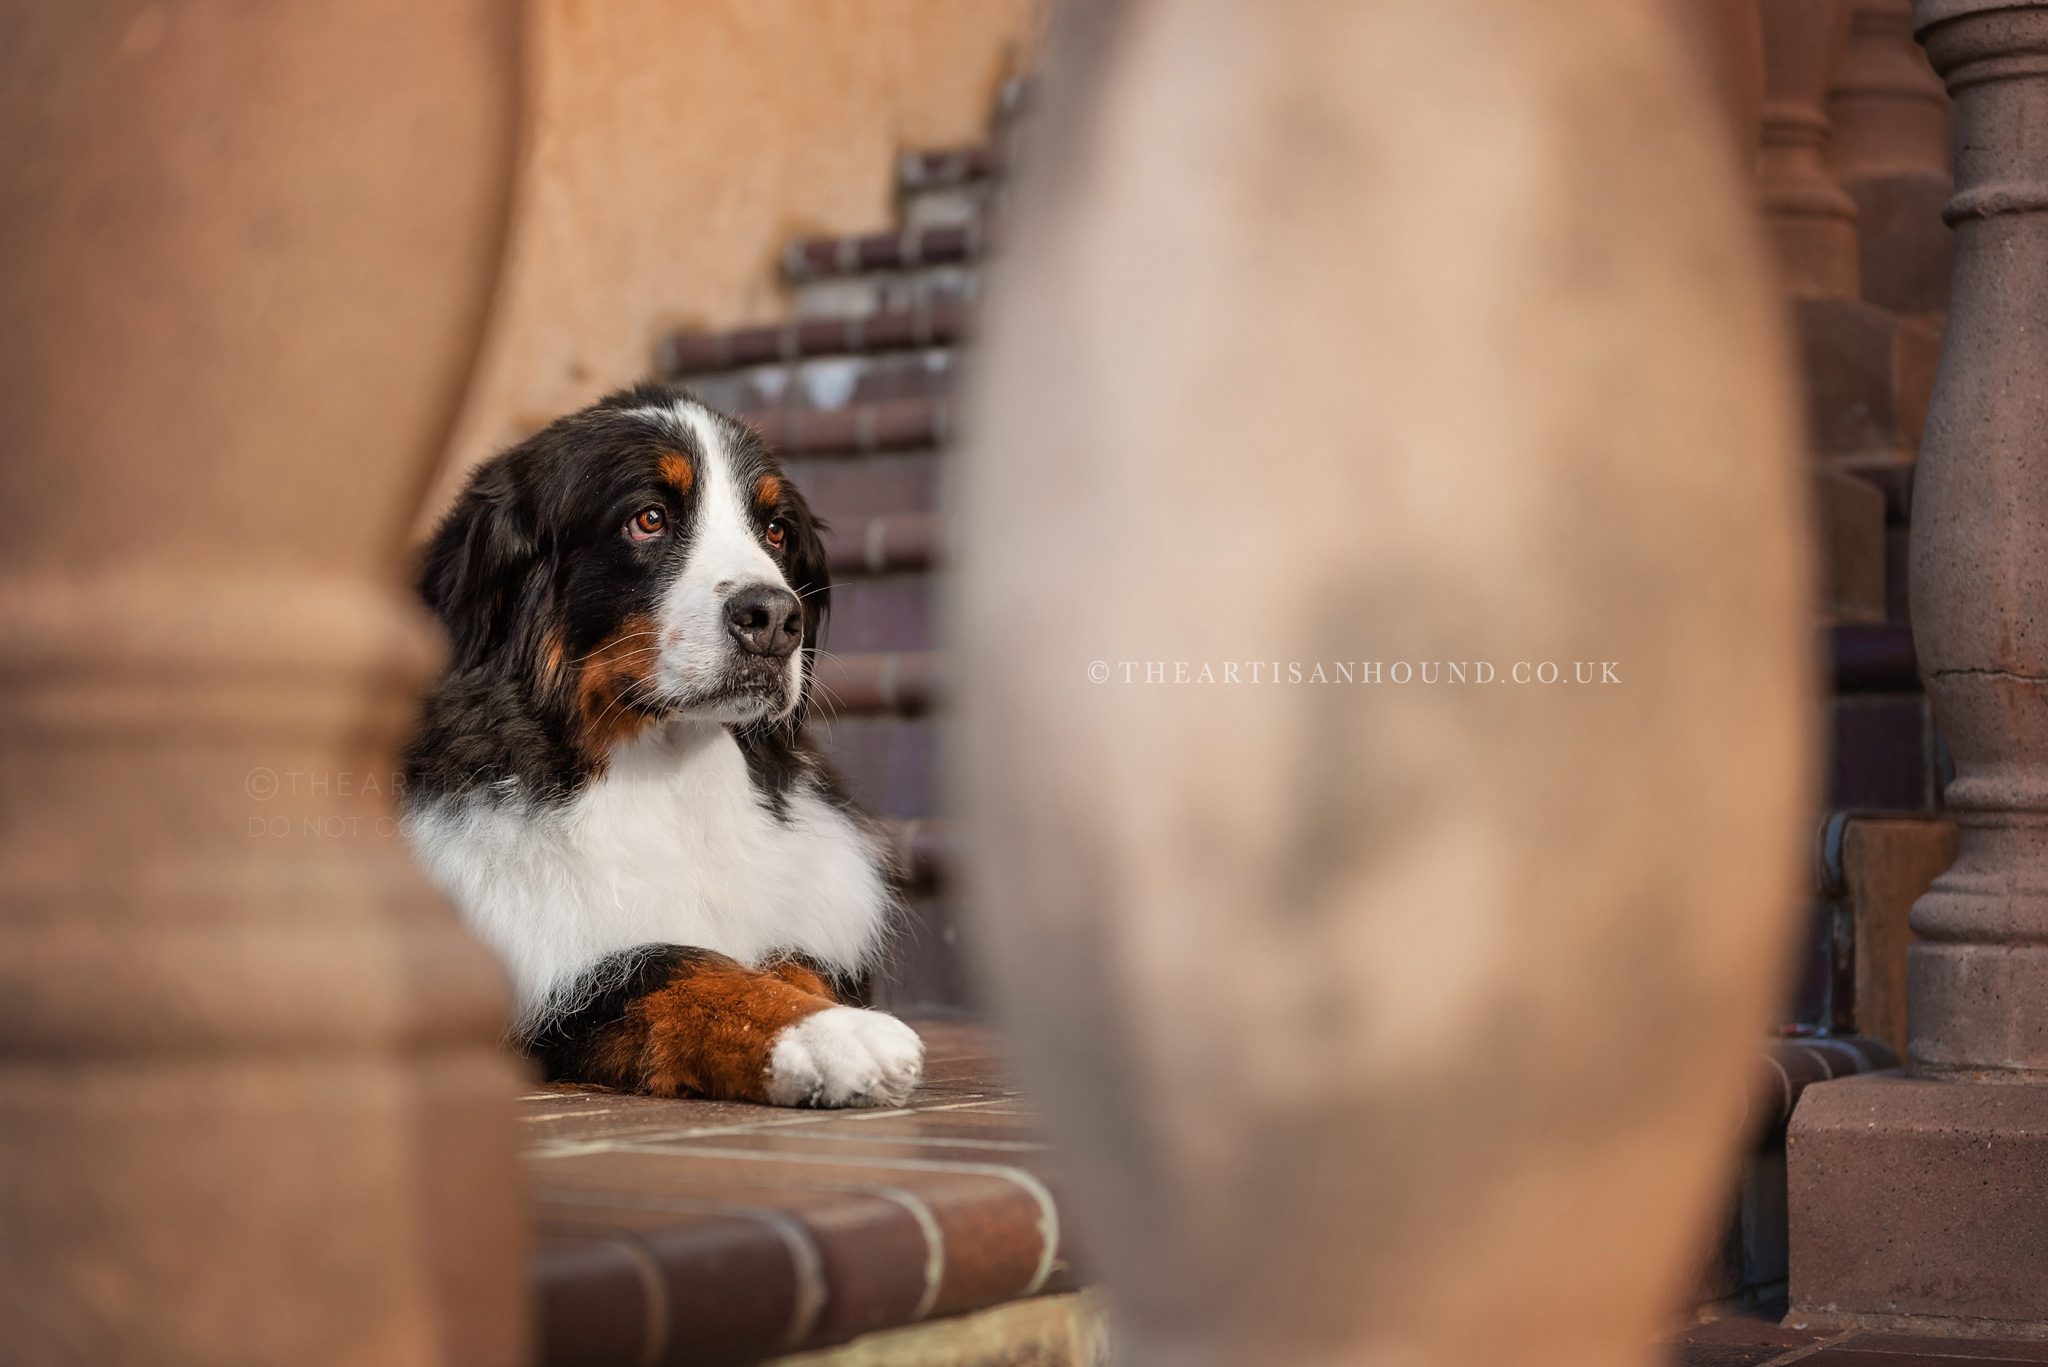 Bernese mountain dog sitting on steps